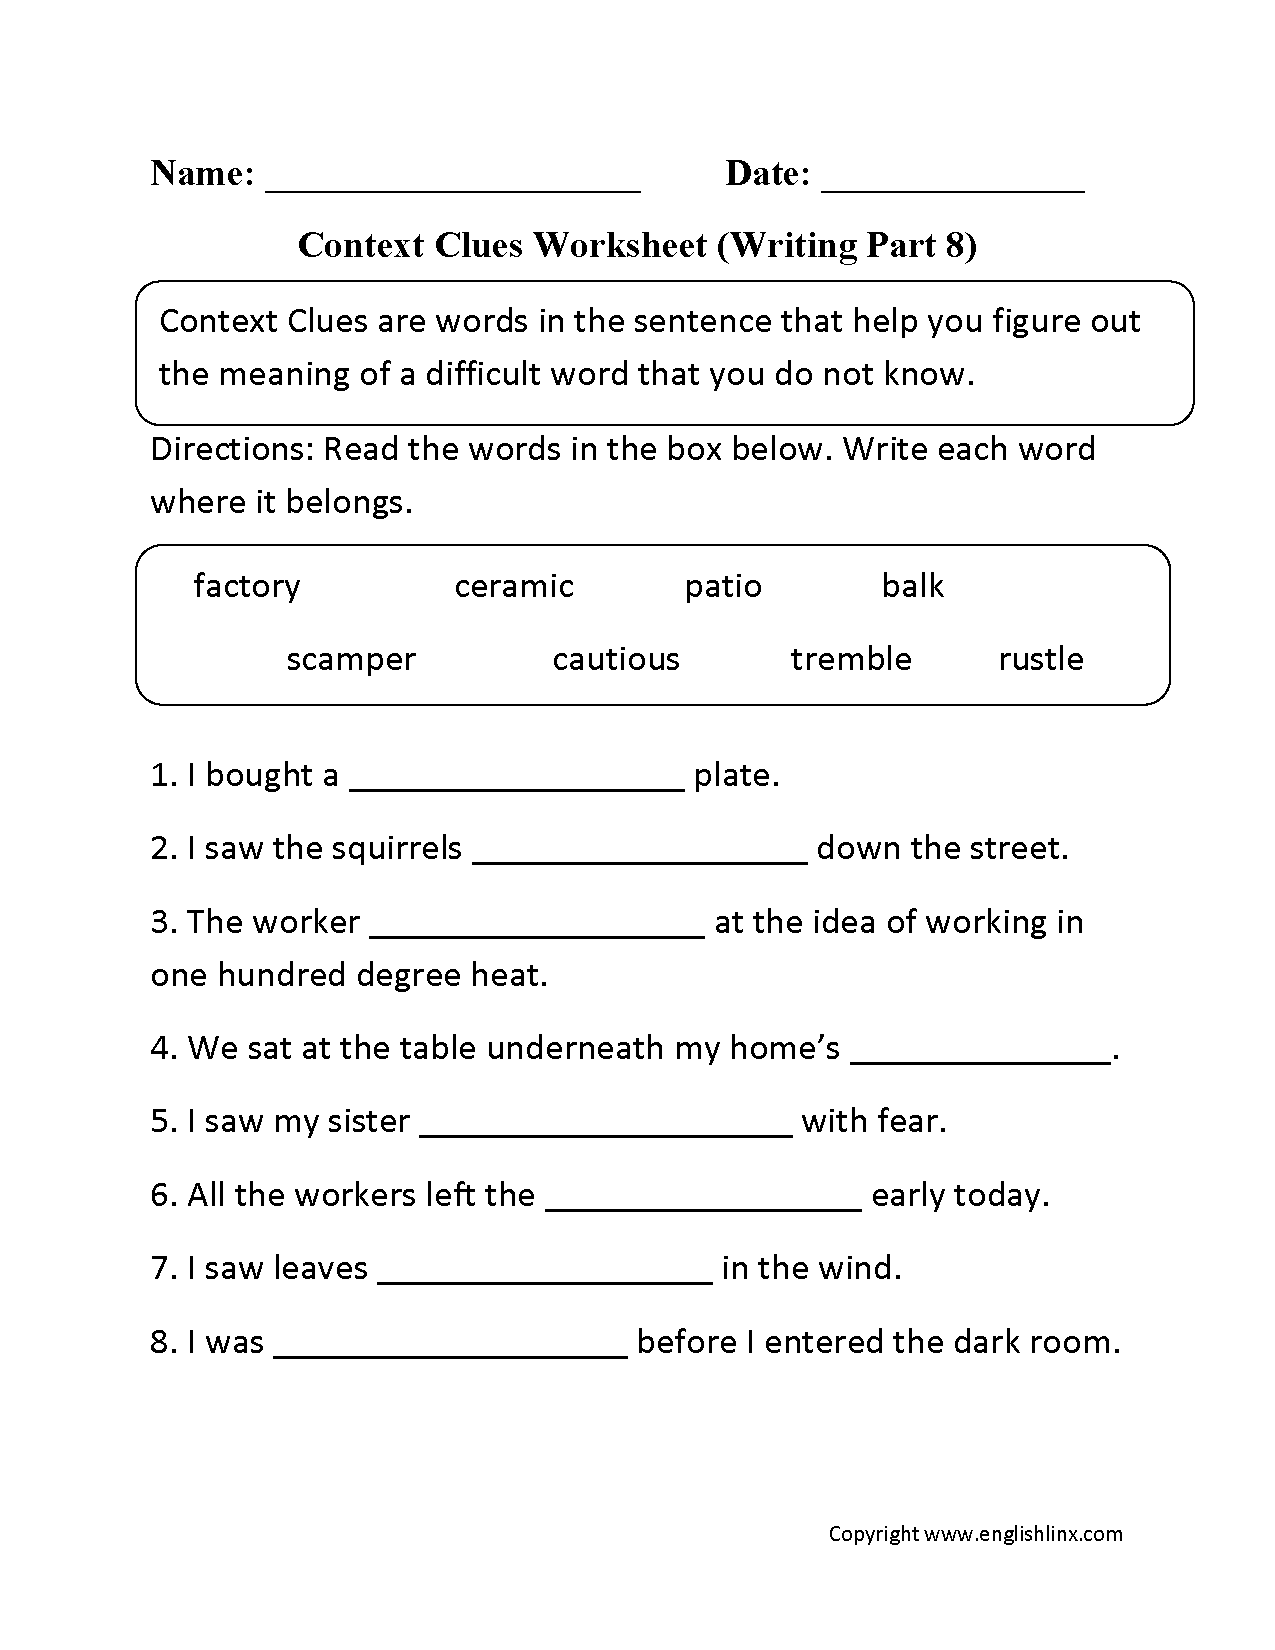 Free Worksheet Intermediate Directions Worksheet englishlinx com context clues worksheets worksheet writing part 8 intermediate